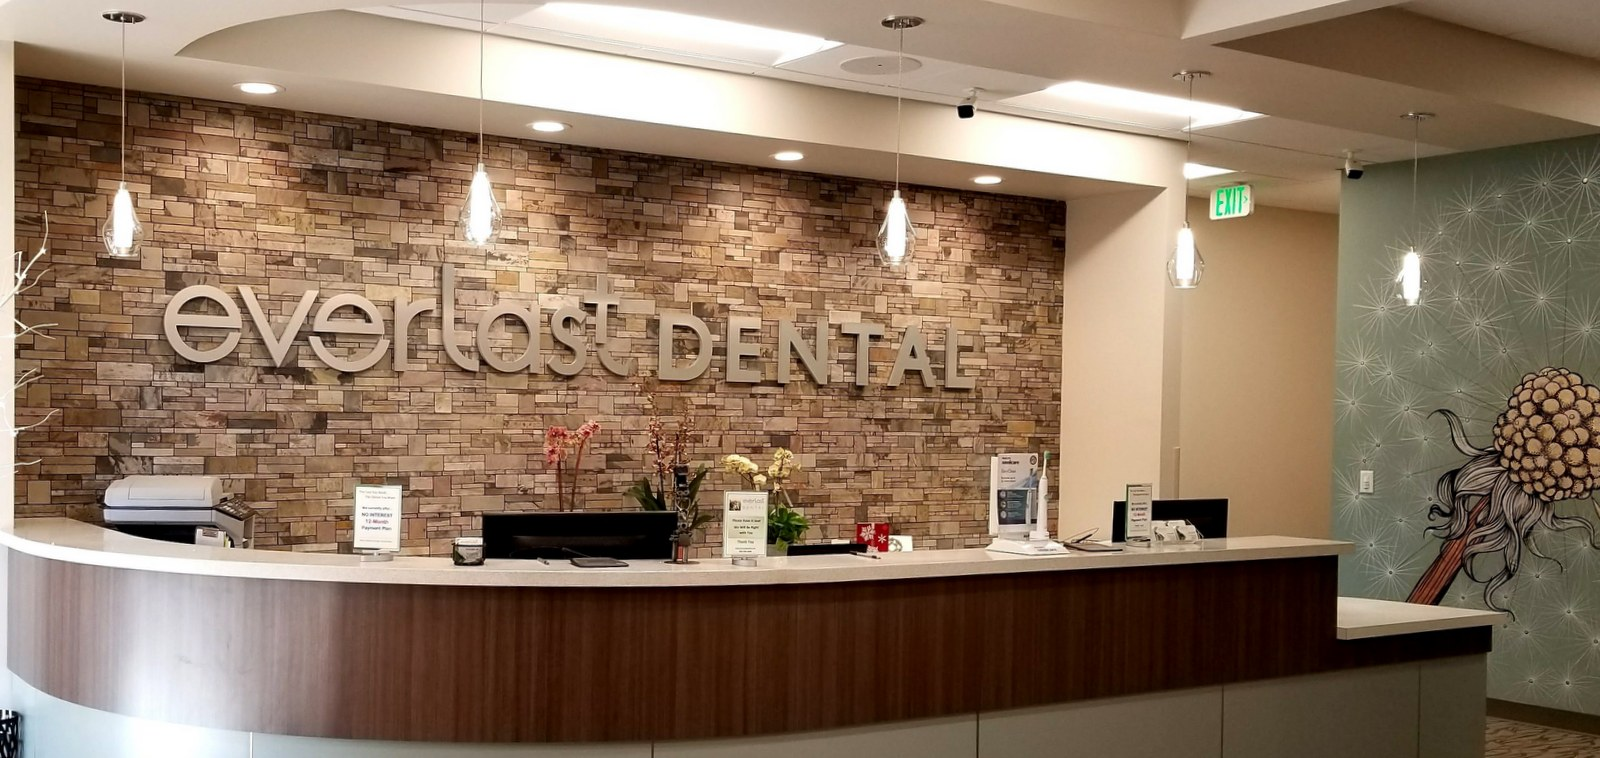 Everlast Dental reviews | Dental at 7400 Sunrise Blvd - Citrus Heights CA